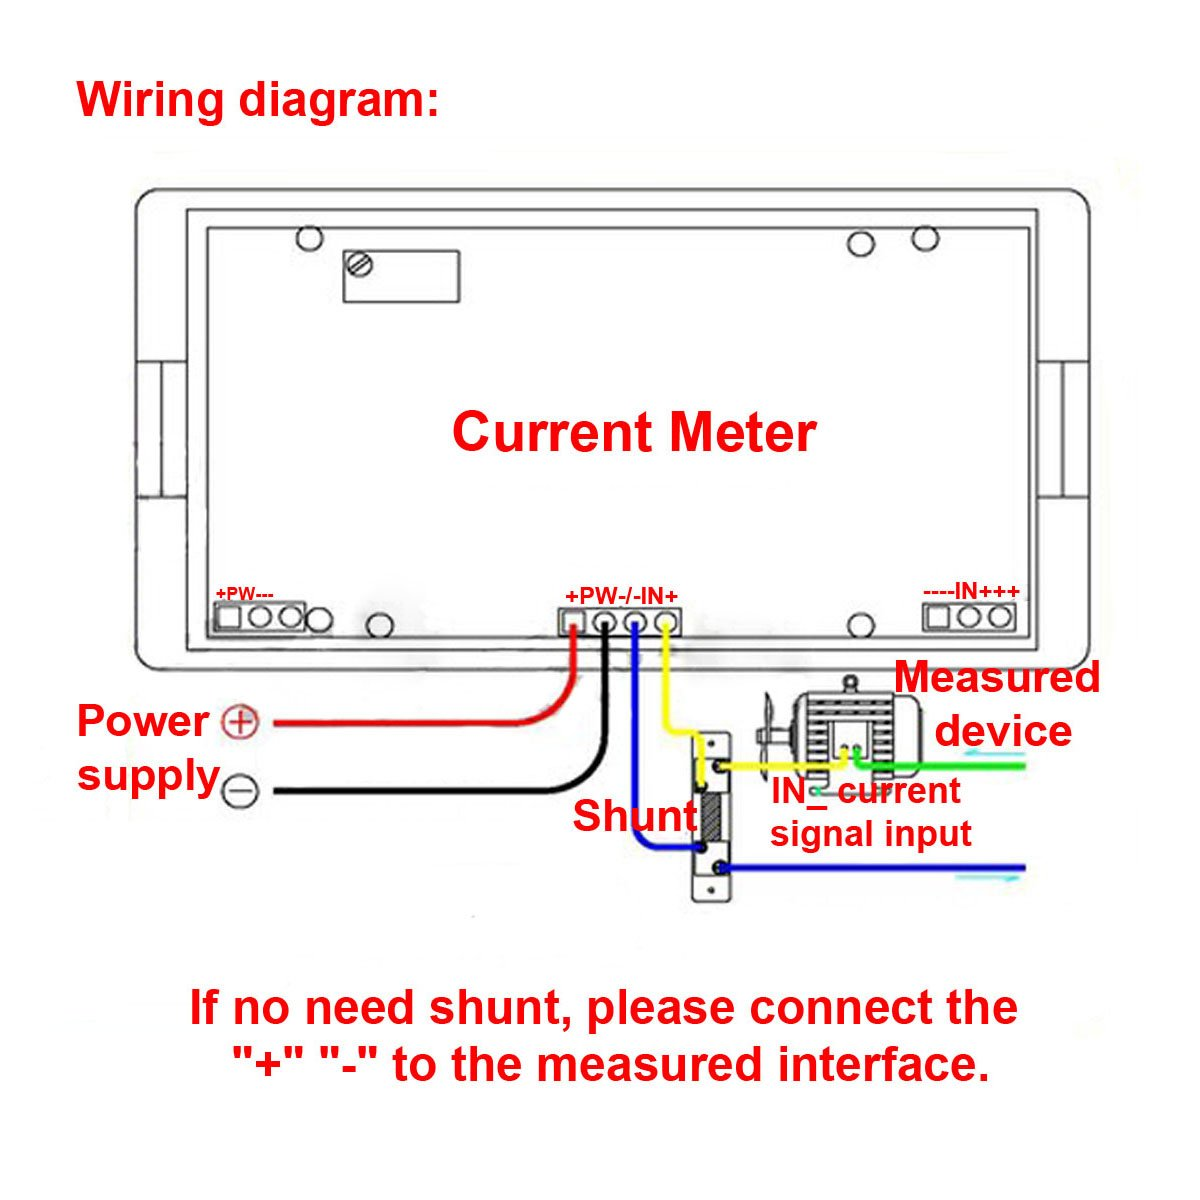 Koso Wiring Diagram Digital Gauge Electrical Work Ac Amp Meter 27 Images Diagrams Creativeand Co